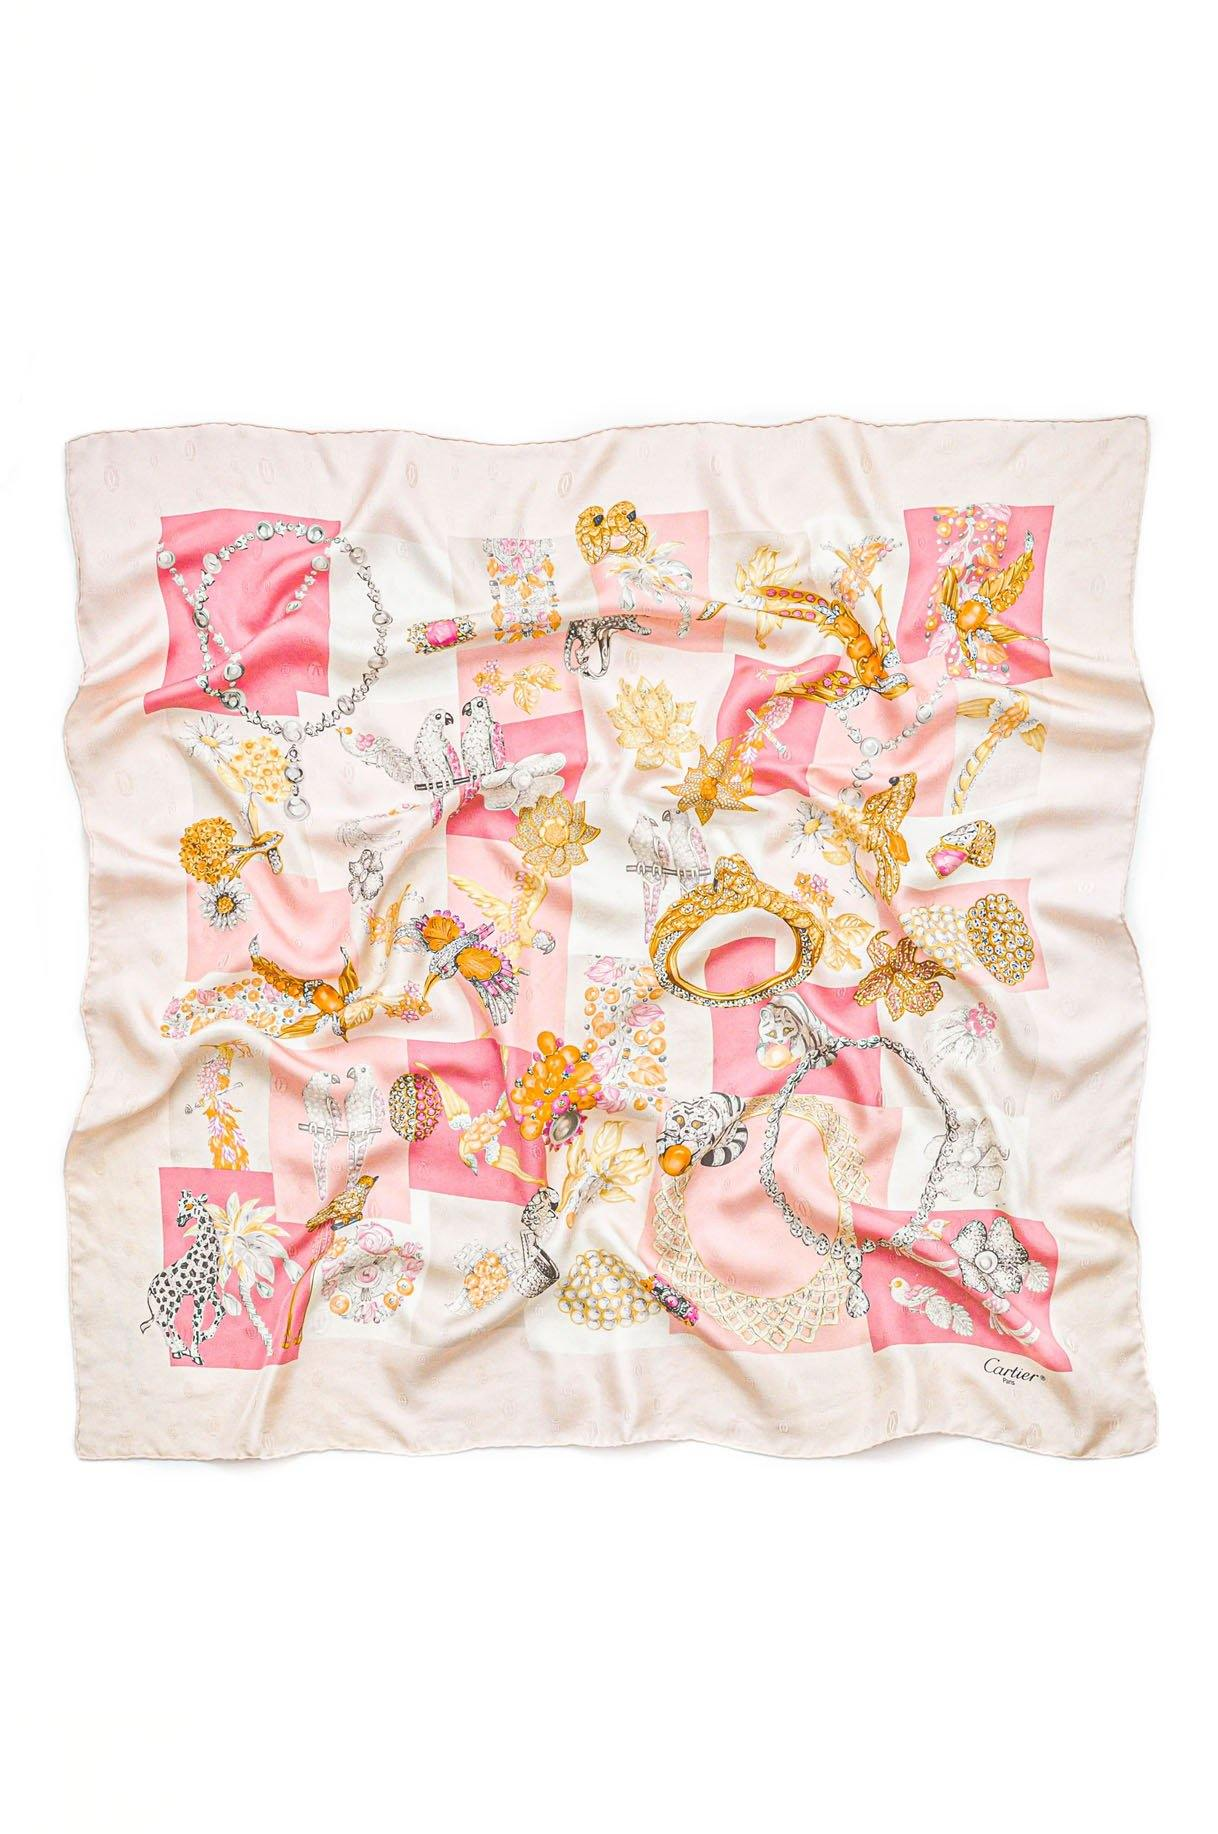 Vintage Cartier Pink Tropical Jeweled Scarf from Sweet and Spark